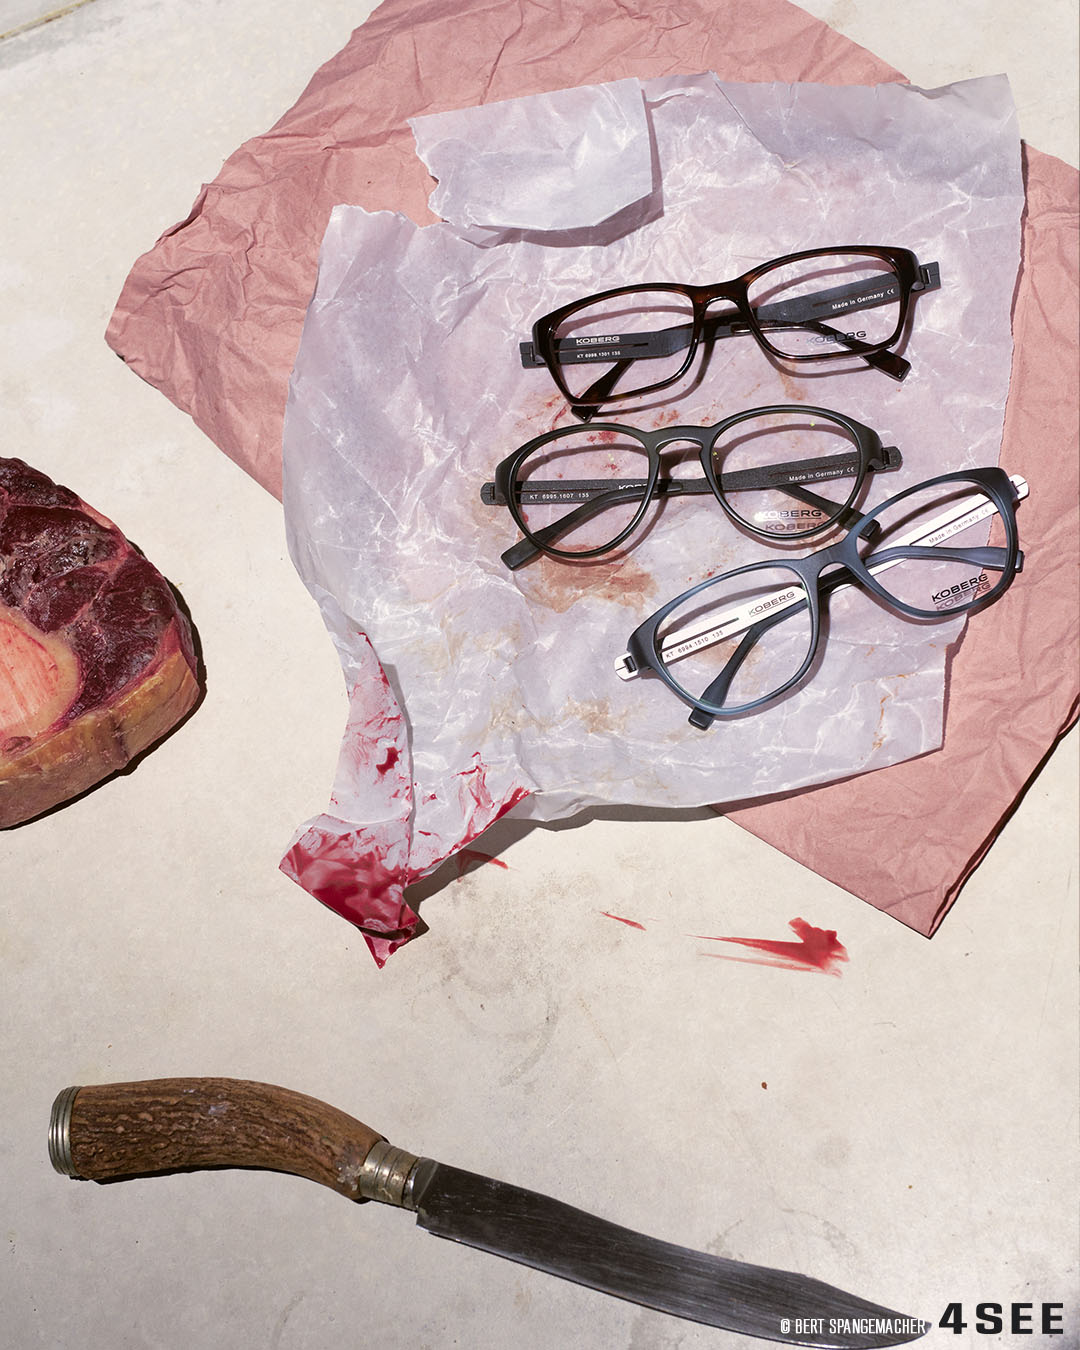 True Crime, 4SEE Eyewear Fashion Editorial featuring KOBERG eyewear, photography by Bert Spangemacher, props by Charlotte Krauss